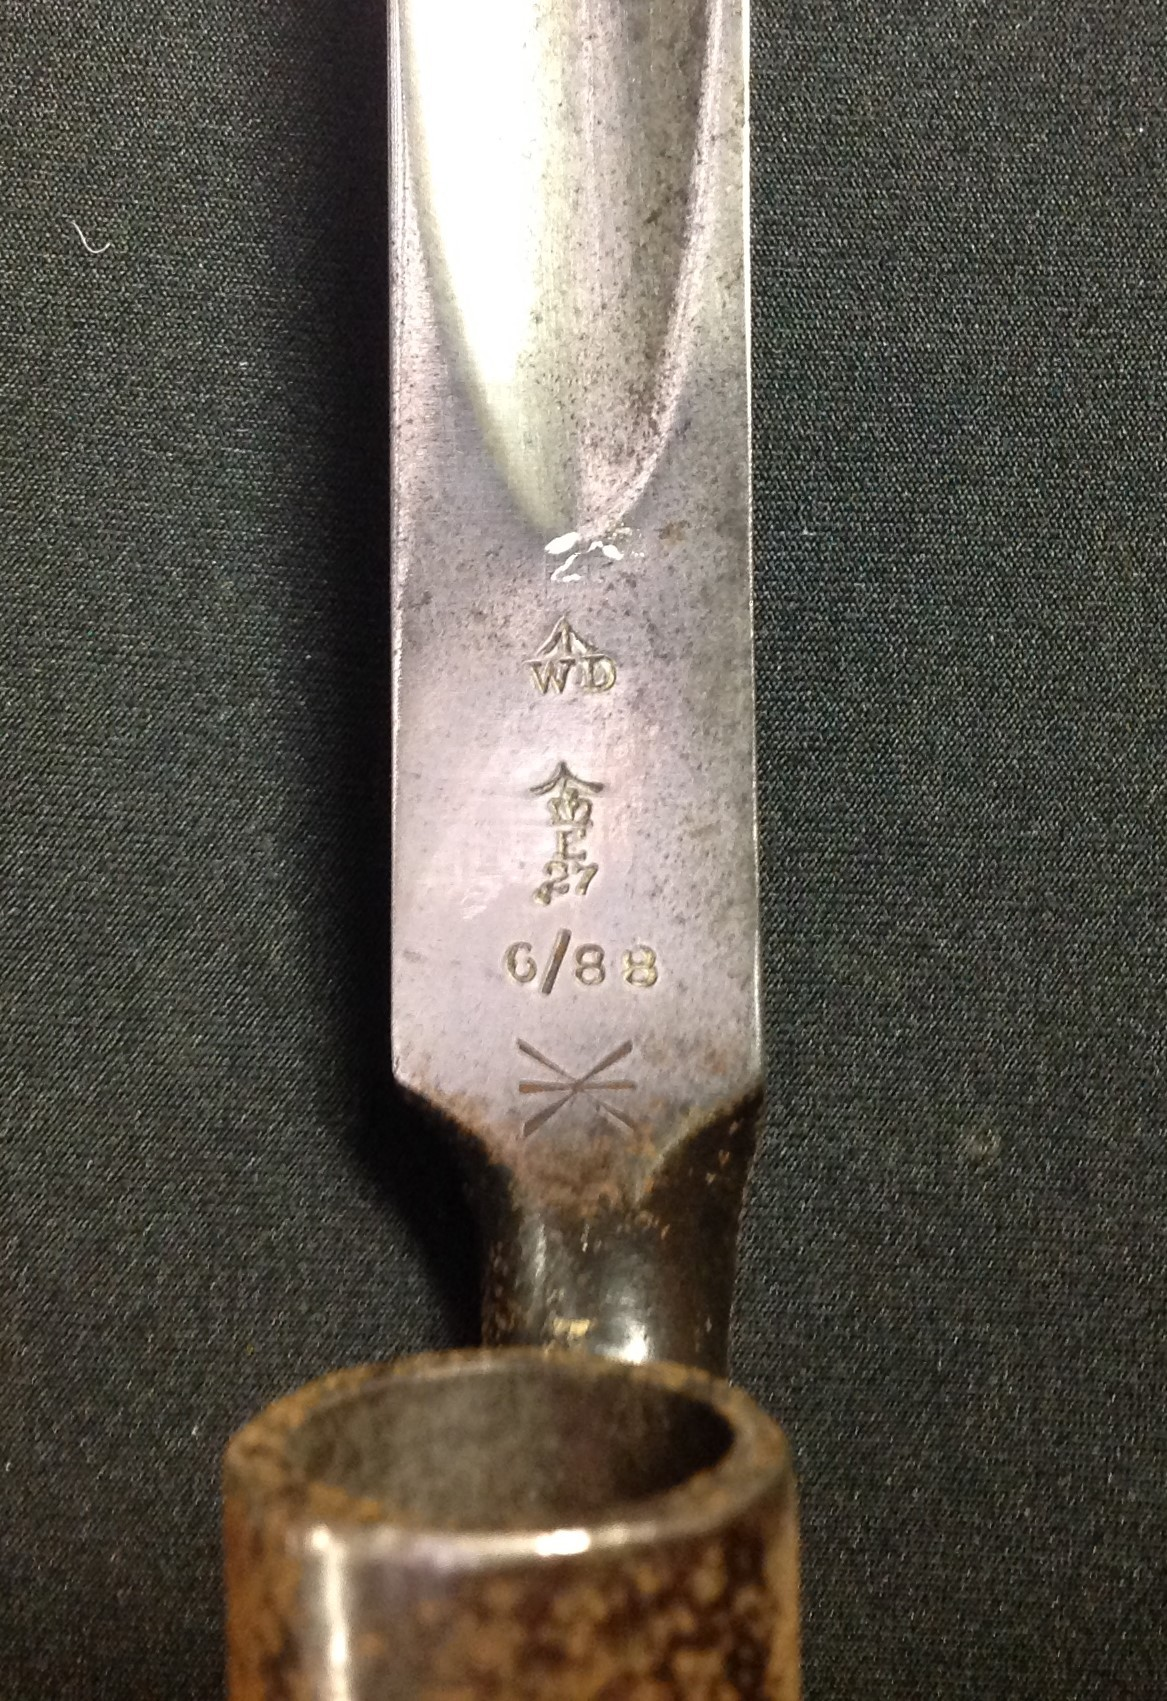 British Pattern 1876 Socket Bayonet for use with the .577/450 caliber Martini-Henry rifle. - Image 2 of 6